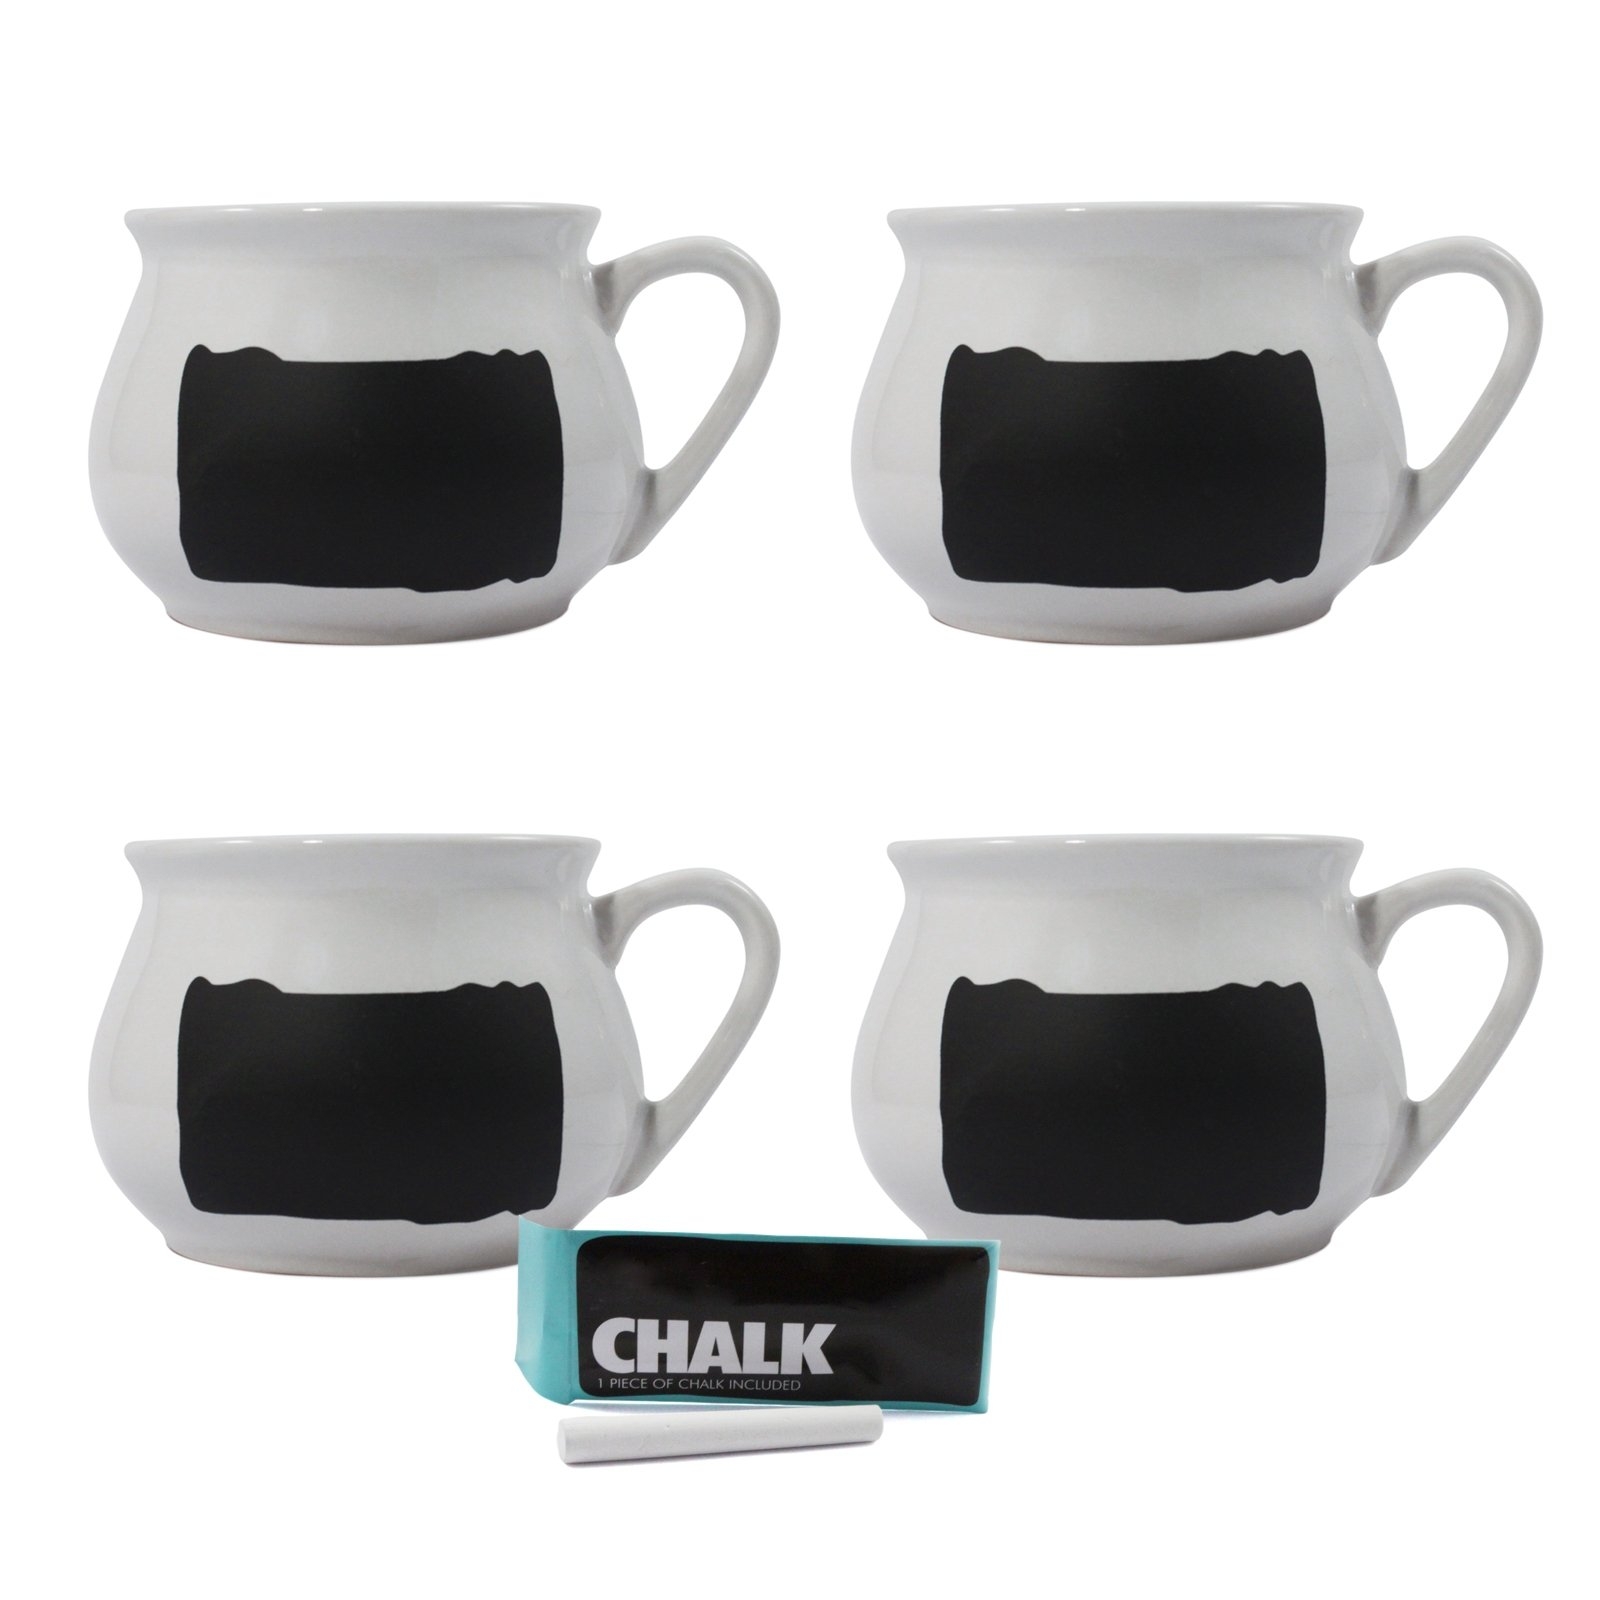 16oz Chalkboard Soup Mugs set of 4 with chalk